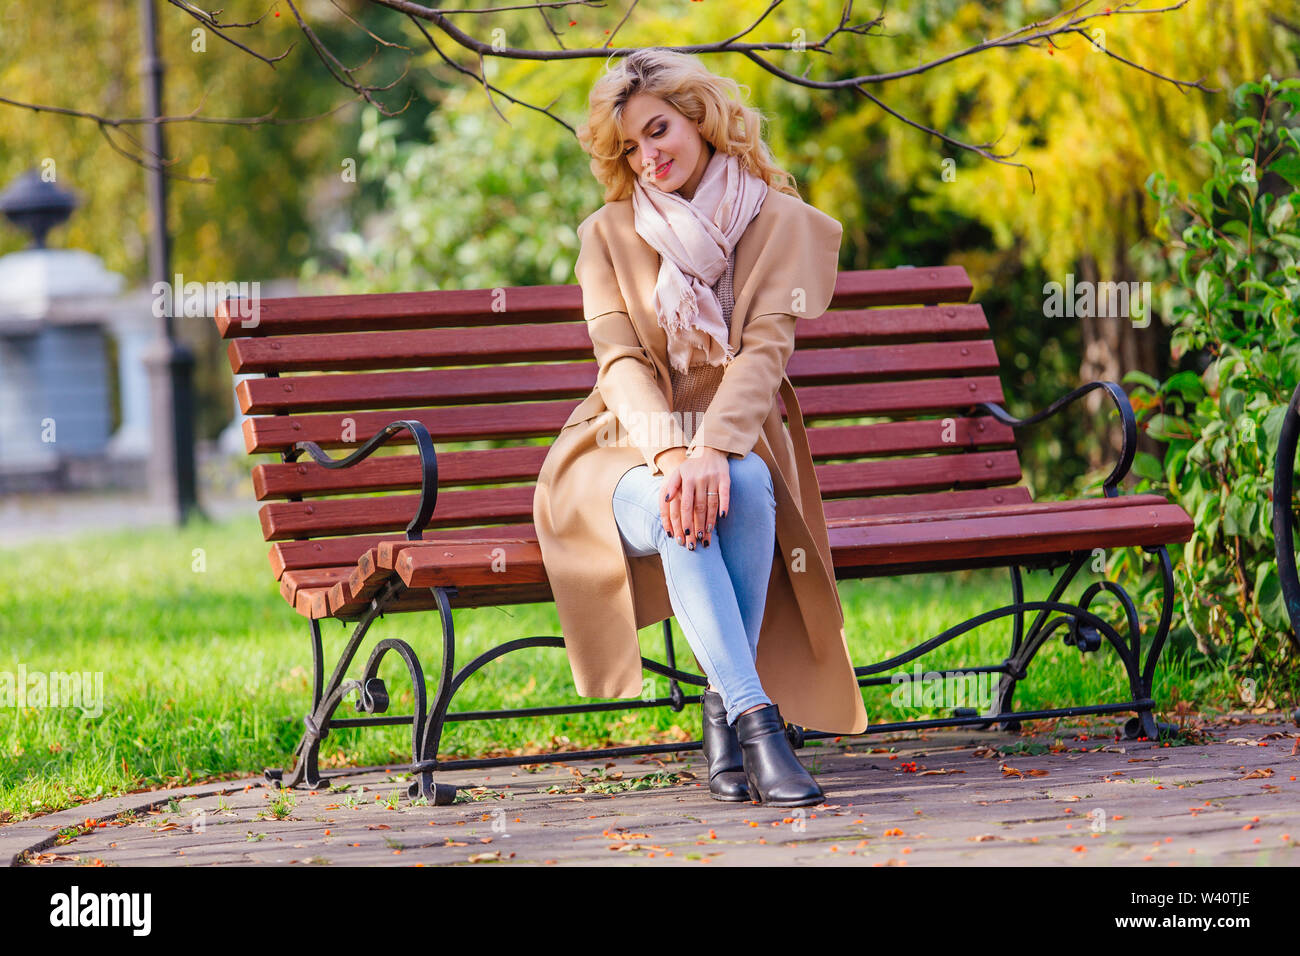 Young beautiful woman sitting on the bench in autumn park under the tree with yellow leaves - Stock Image